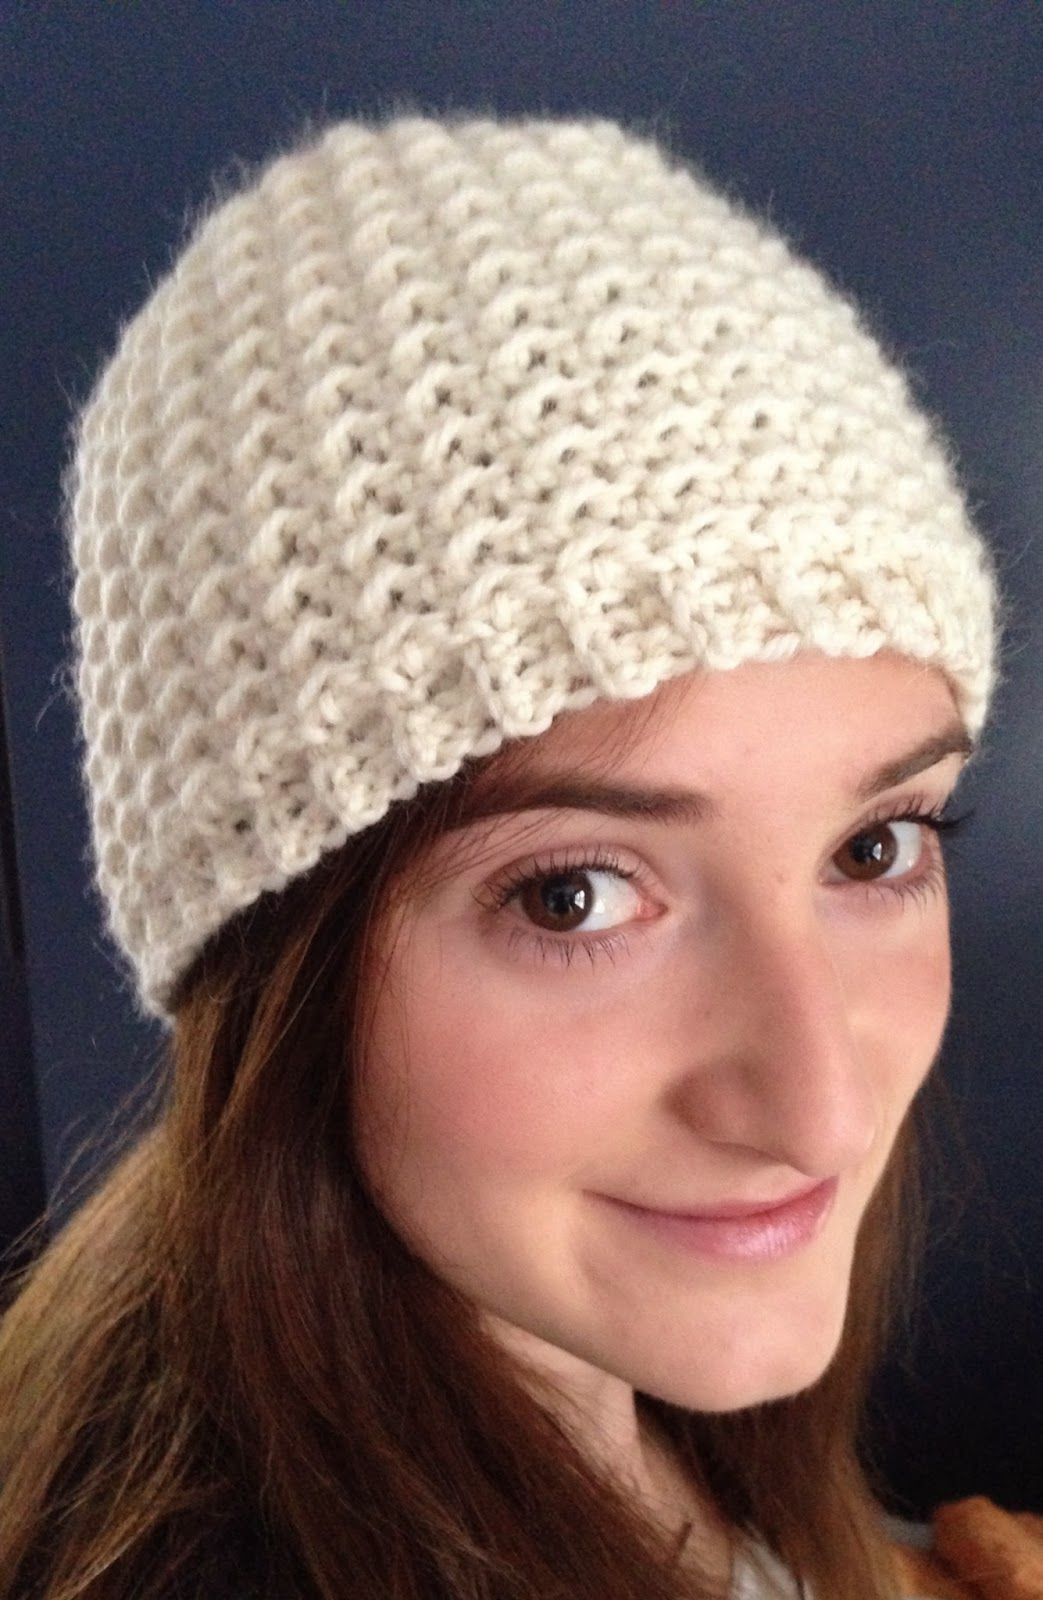 Ball hank n skein oh so seedy beanie free crochet hat pattern quick and easy and full of texture is the name of the game for this free crochet hat pattern uses hdc and sl st combo to get a seedy textured feel enjoy bankloansurffo Images